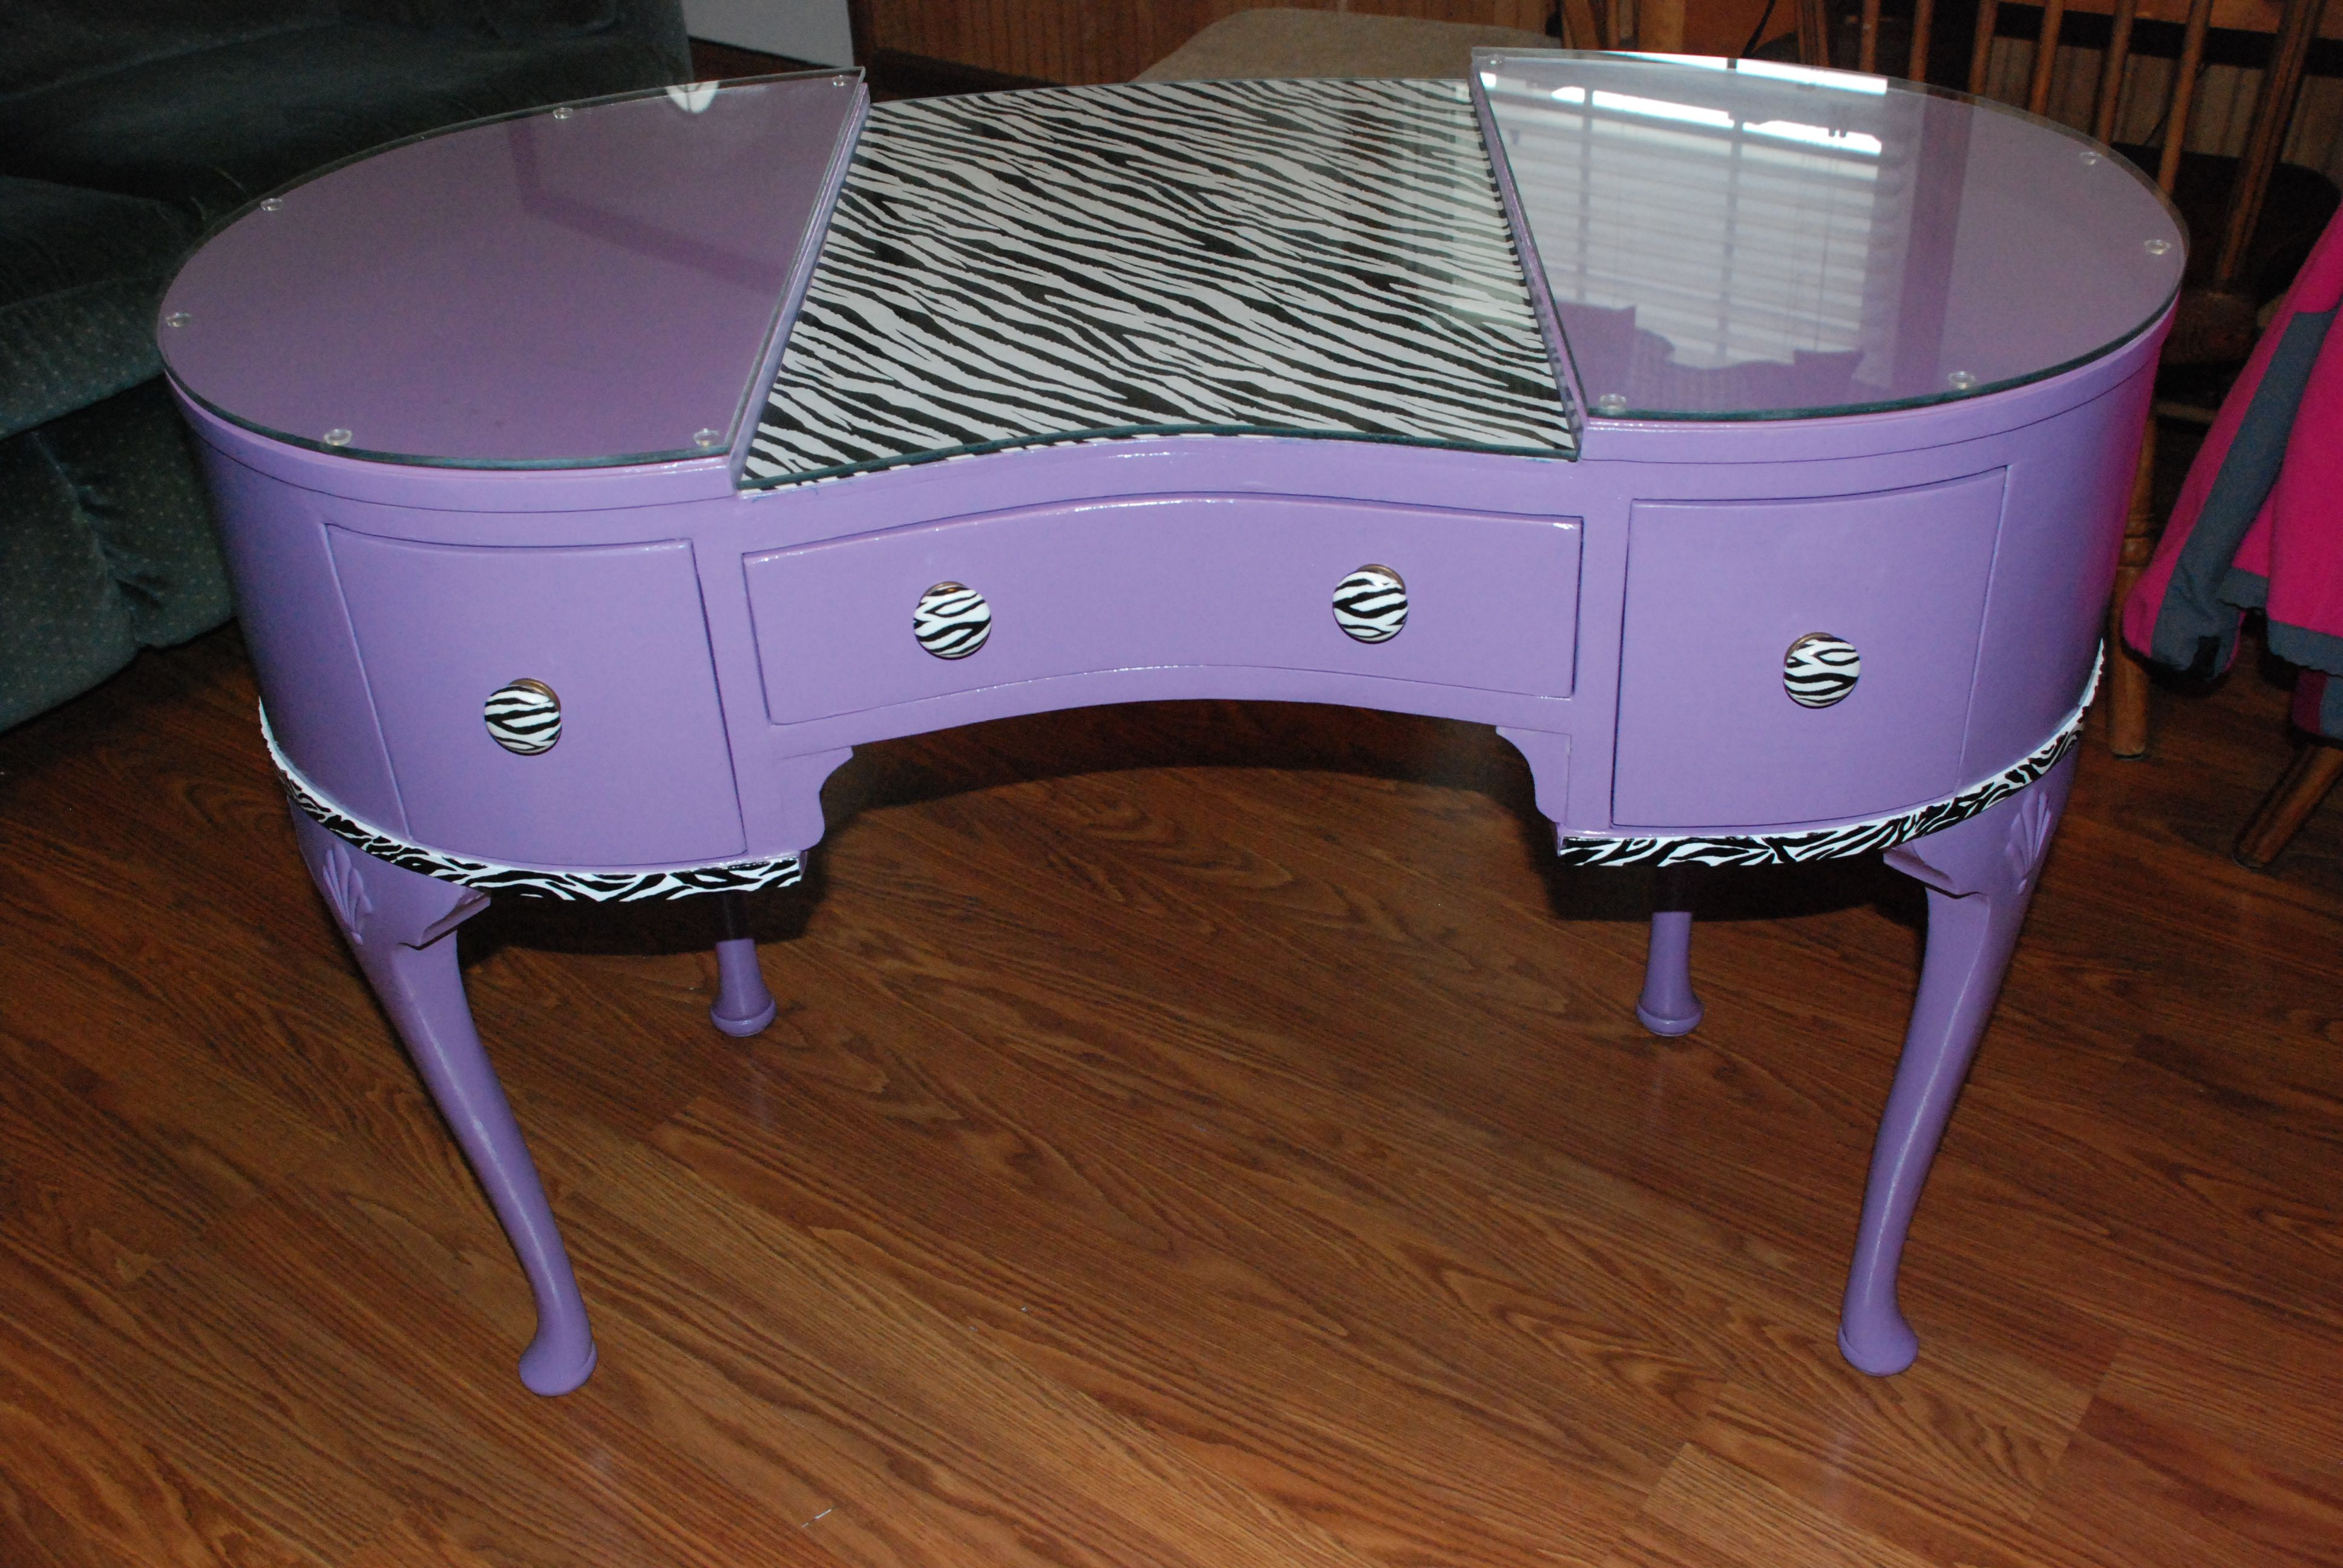 Best 25 manicure table ideas ideas on pinterest nail for Small manicure table